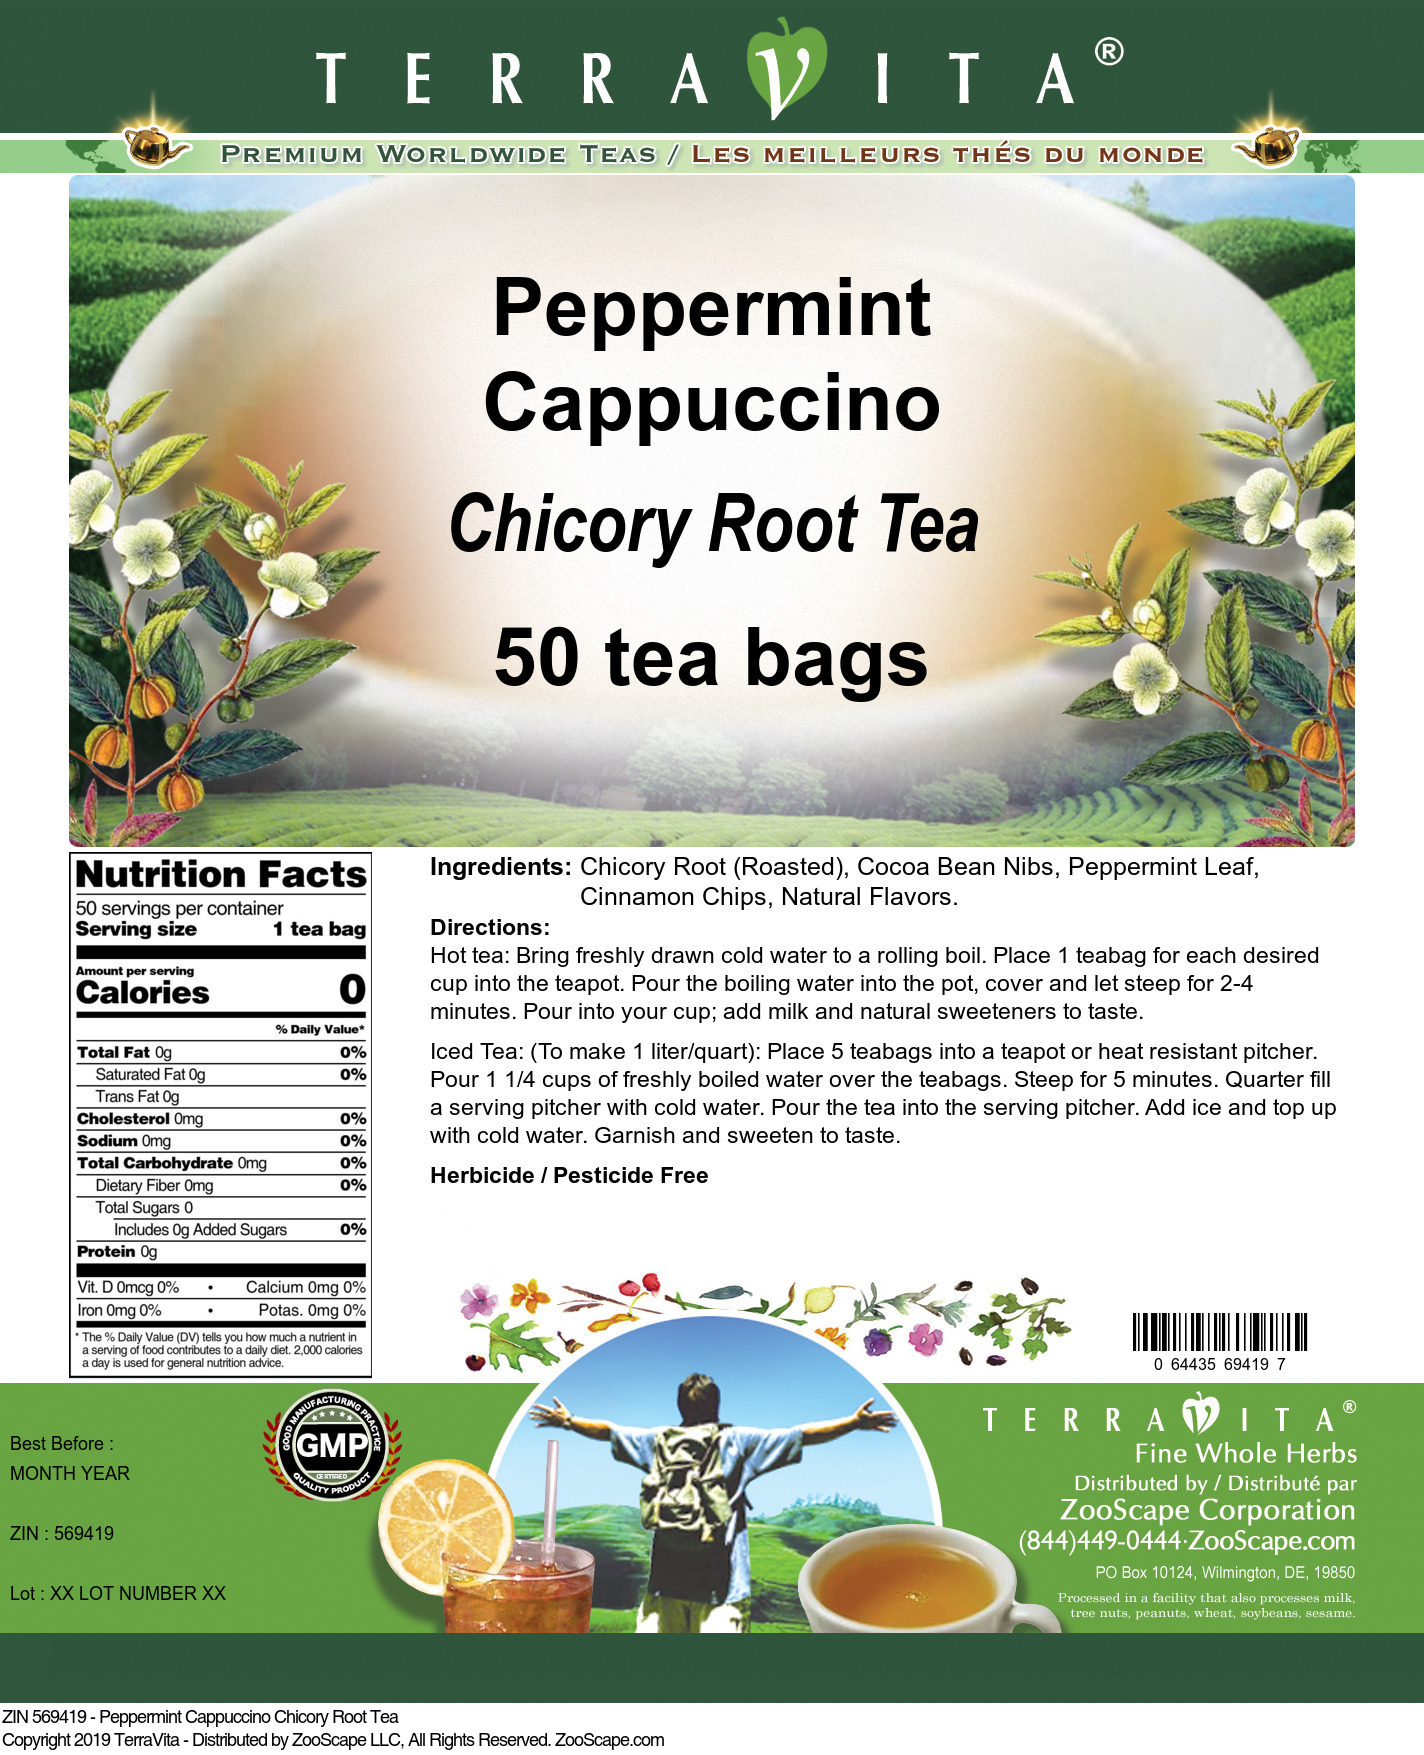 Peppermint Cappuccino Chicory Root